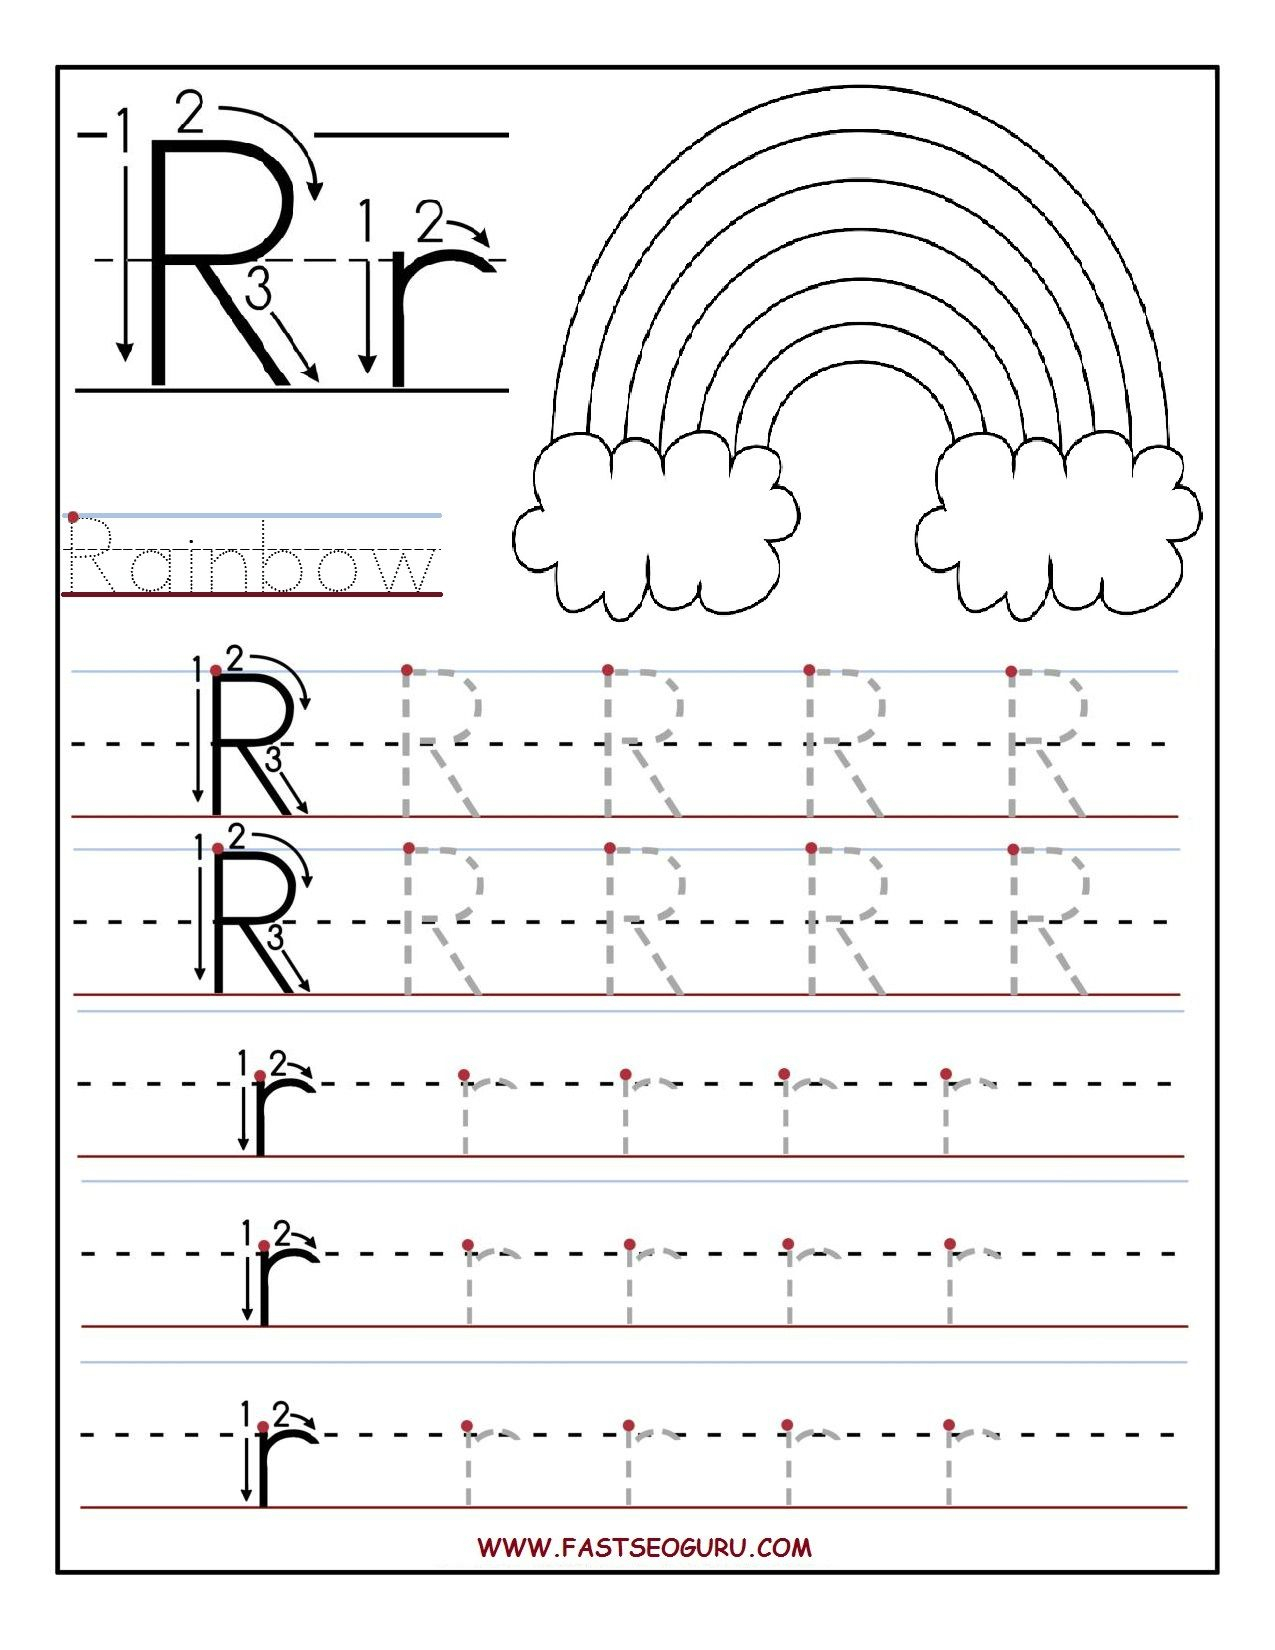 Printable Letter R Tracing Worksheets For Preschool for Letter Tracing Worksheets Toddlers